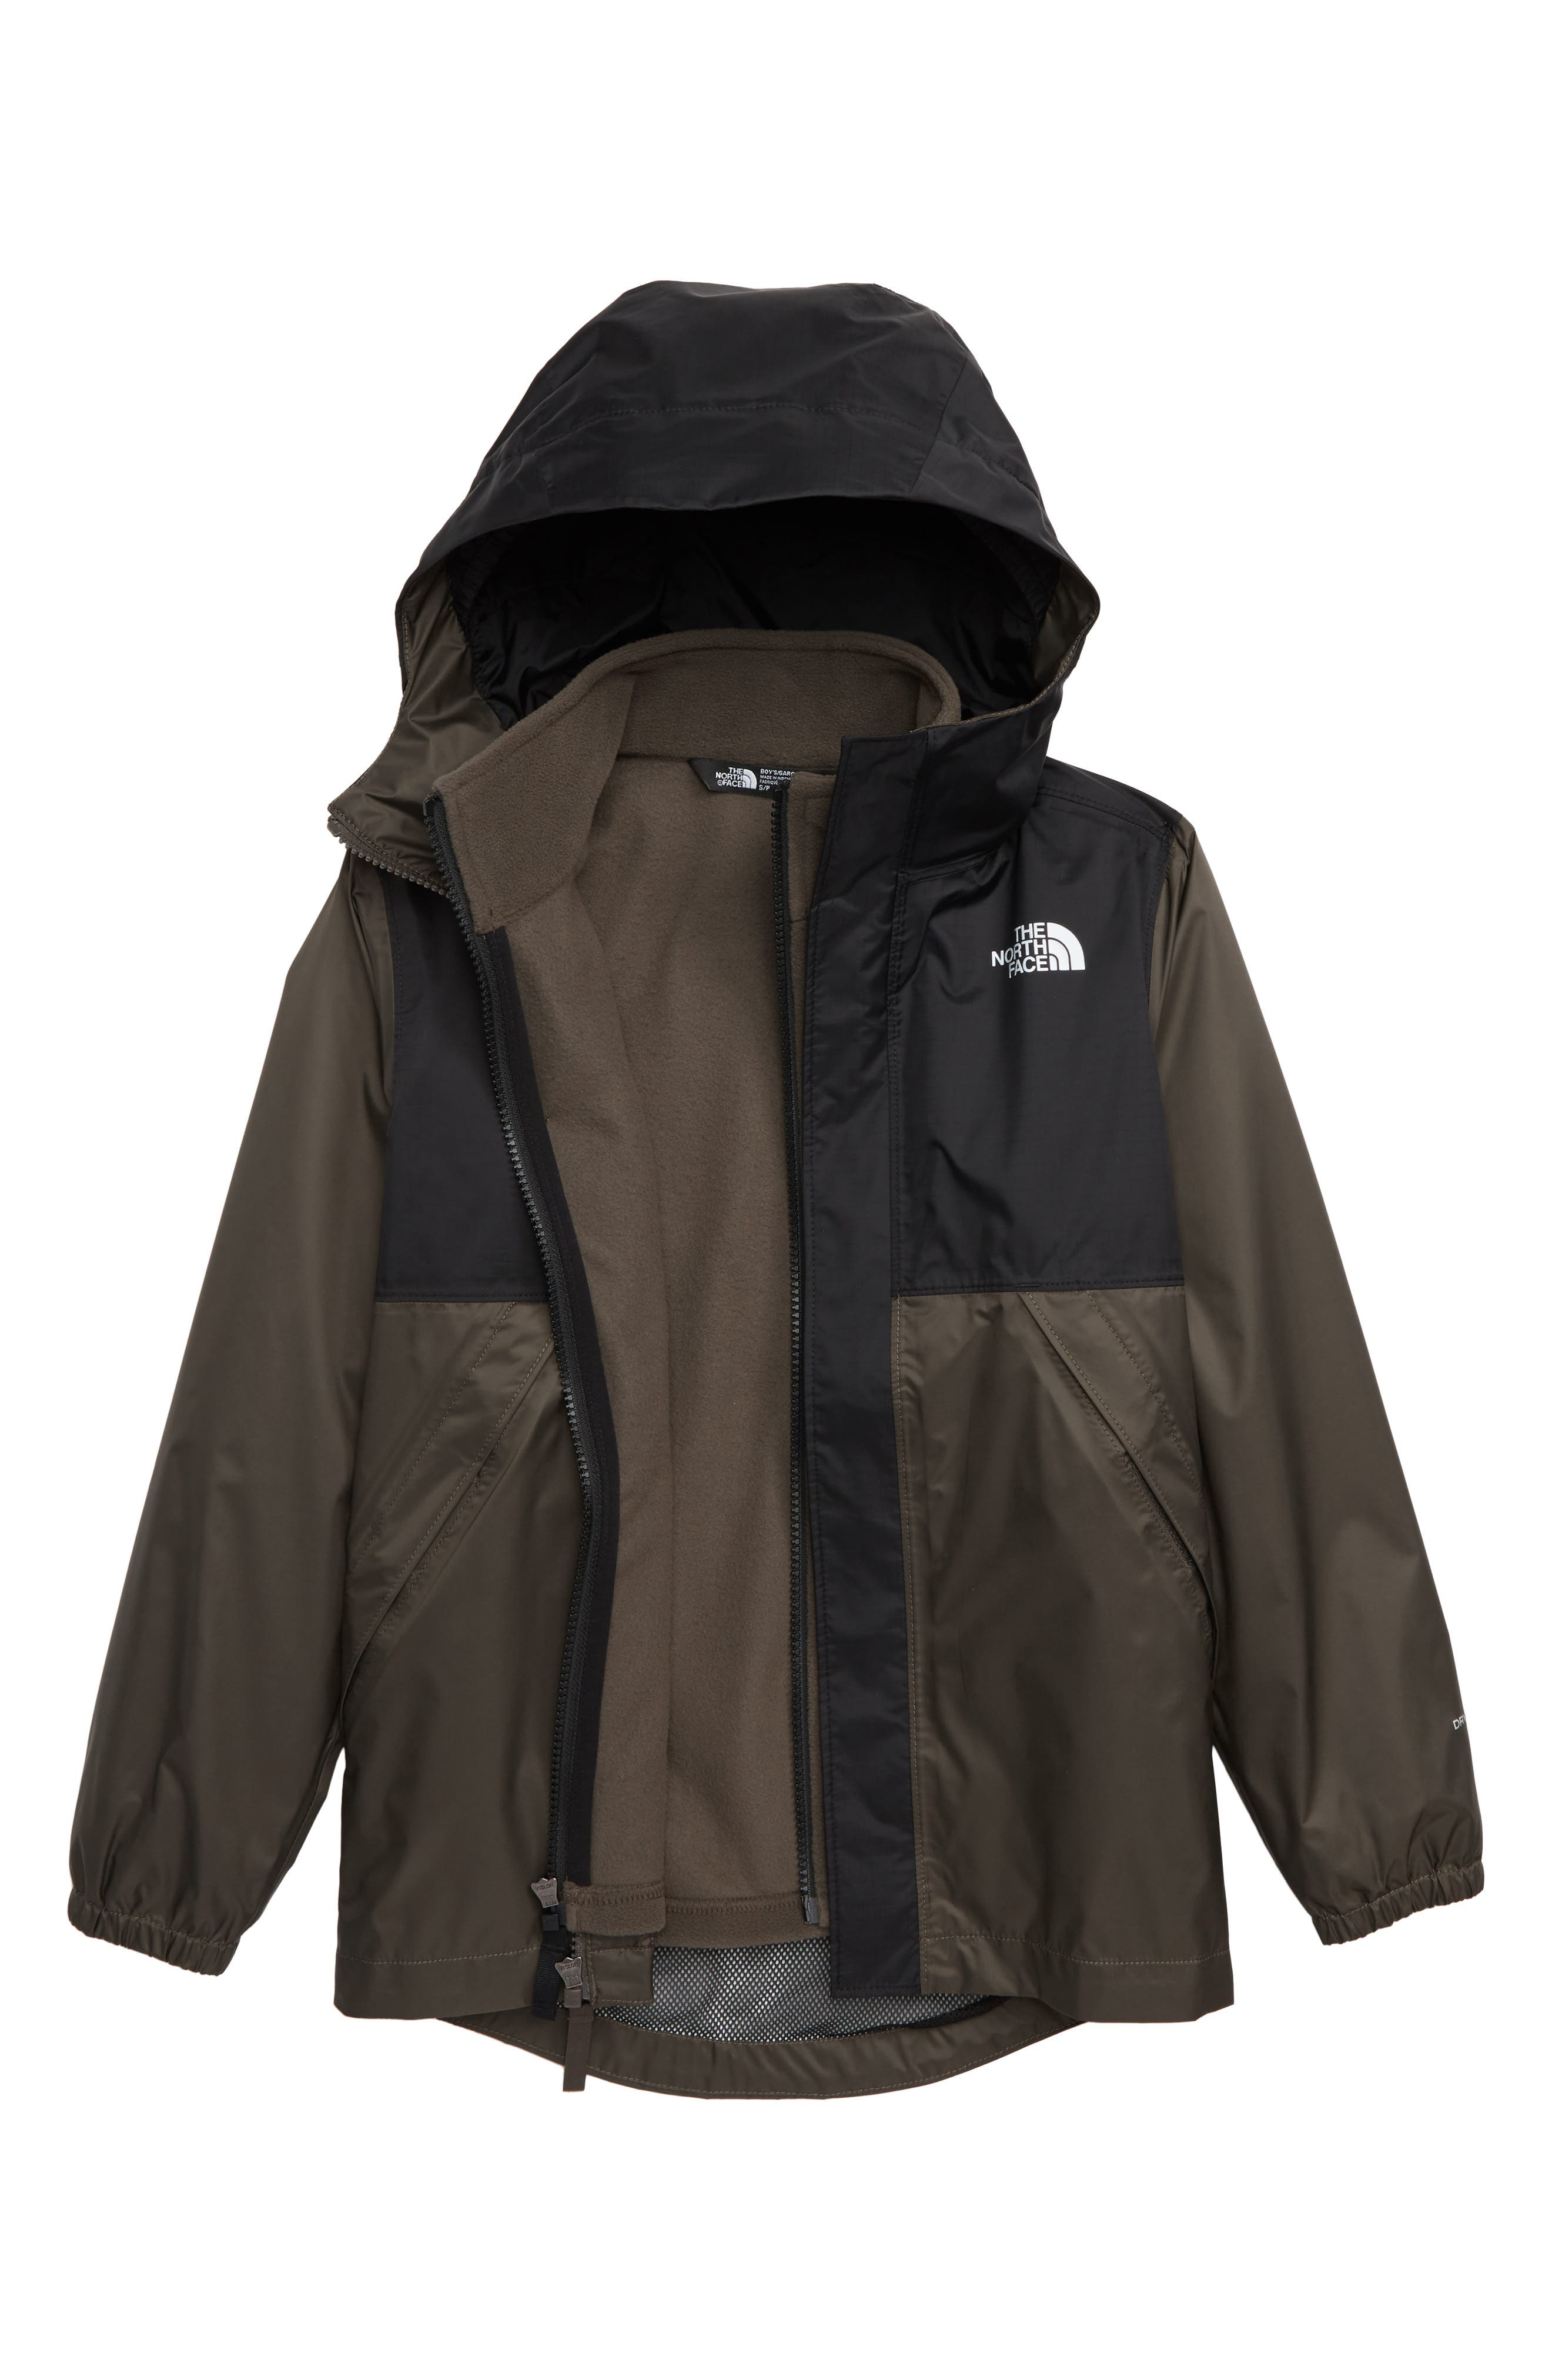 Stormy Rain Triclimate<sup>®</sup> Waterproof 3-in-1 Jacket,                             Main thumbnail 1, color,                             TAUPE GREEN